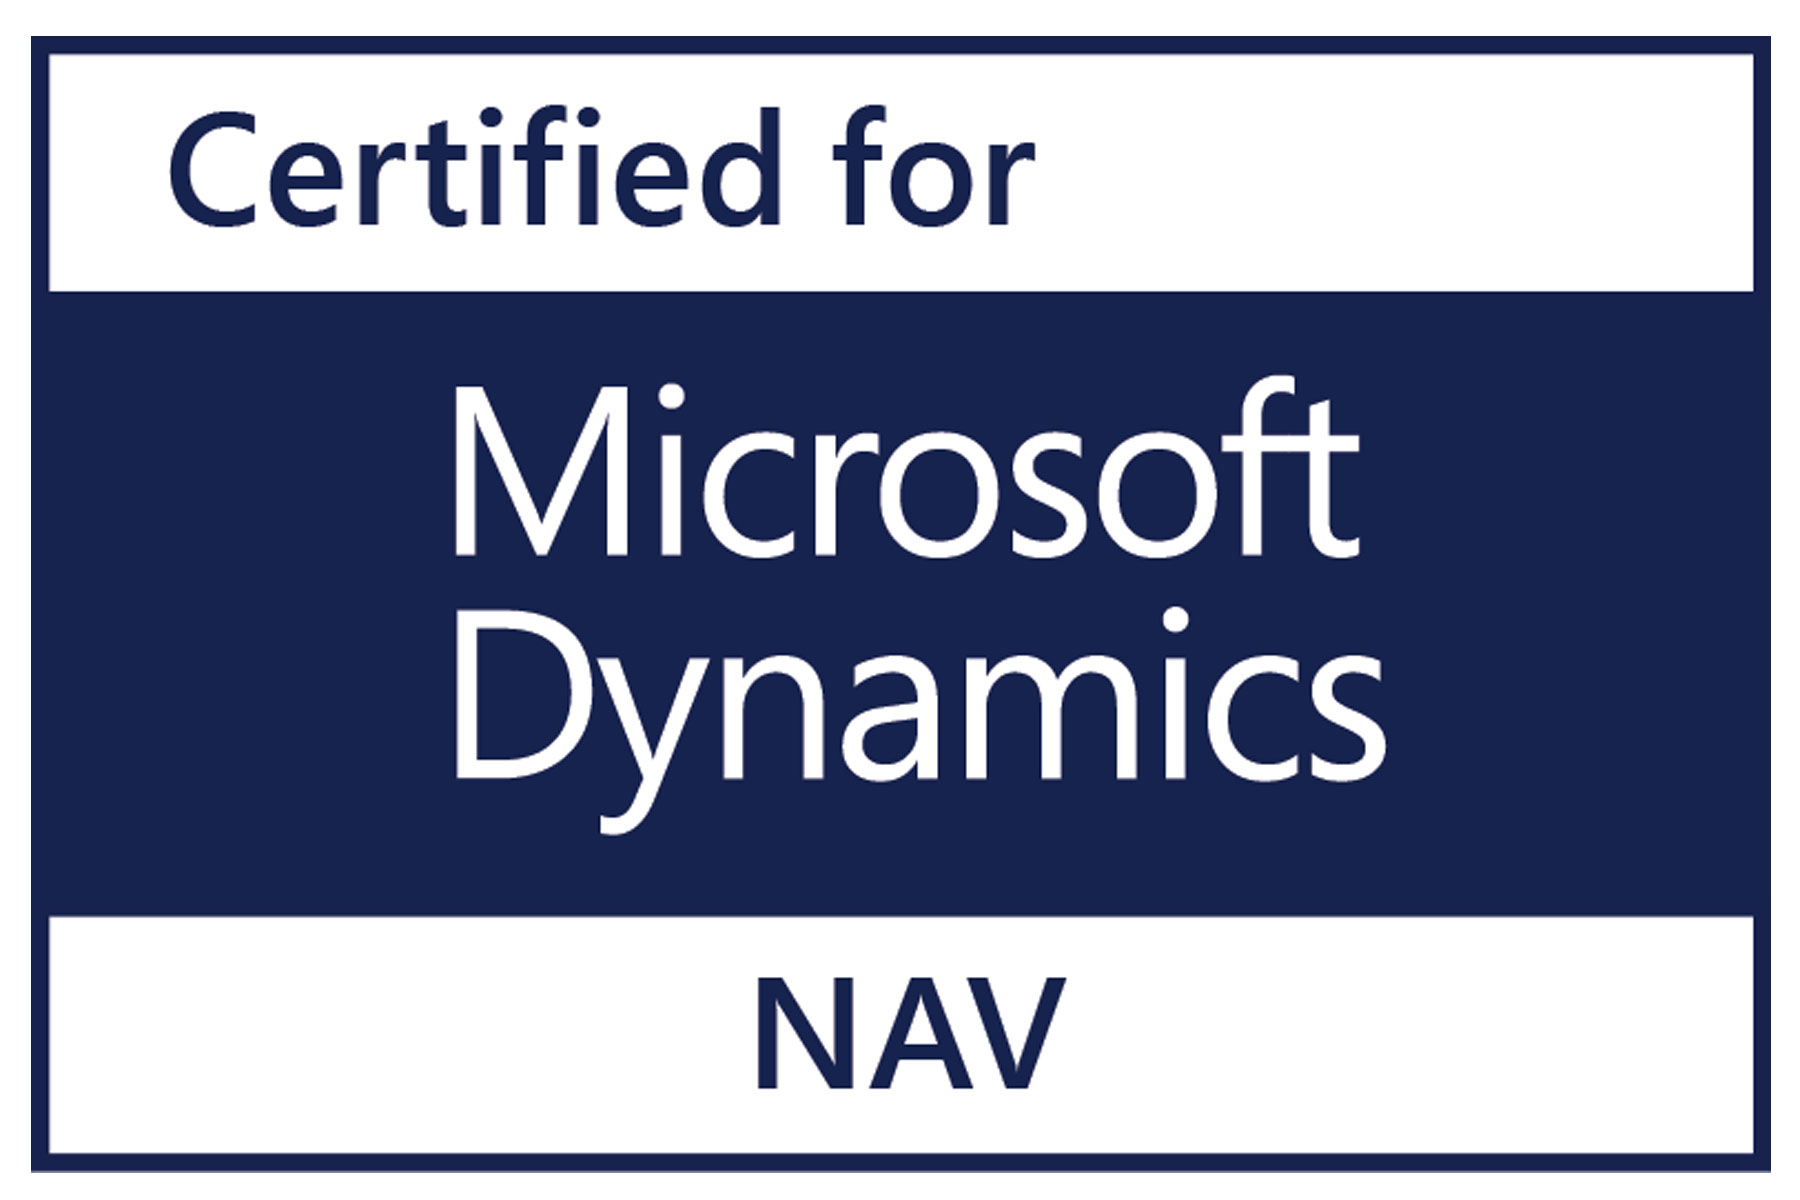 Ingenica solutions earns certified for microsoft dynamics ingenica solutions earns certified for microsoft dynamics accreditation 1betcityfo Images